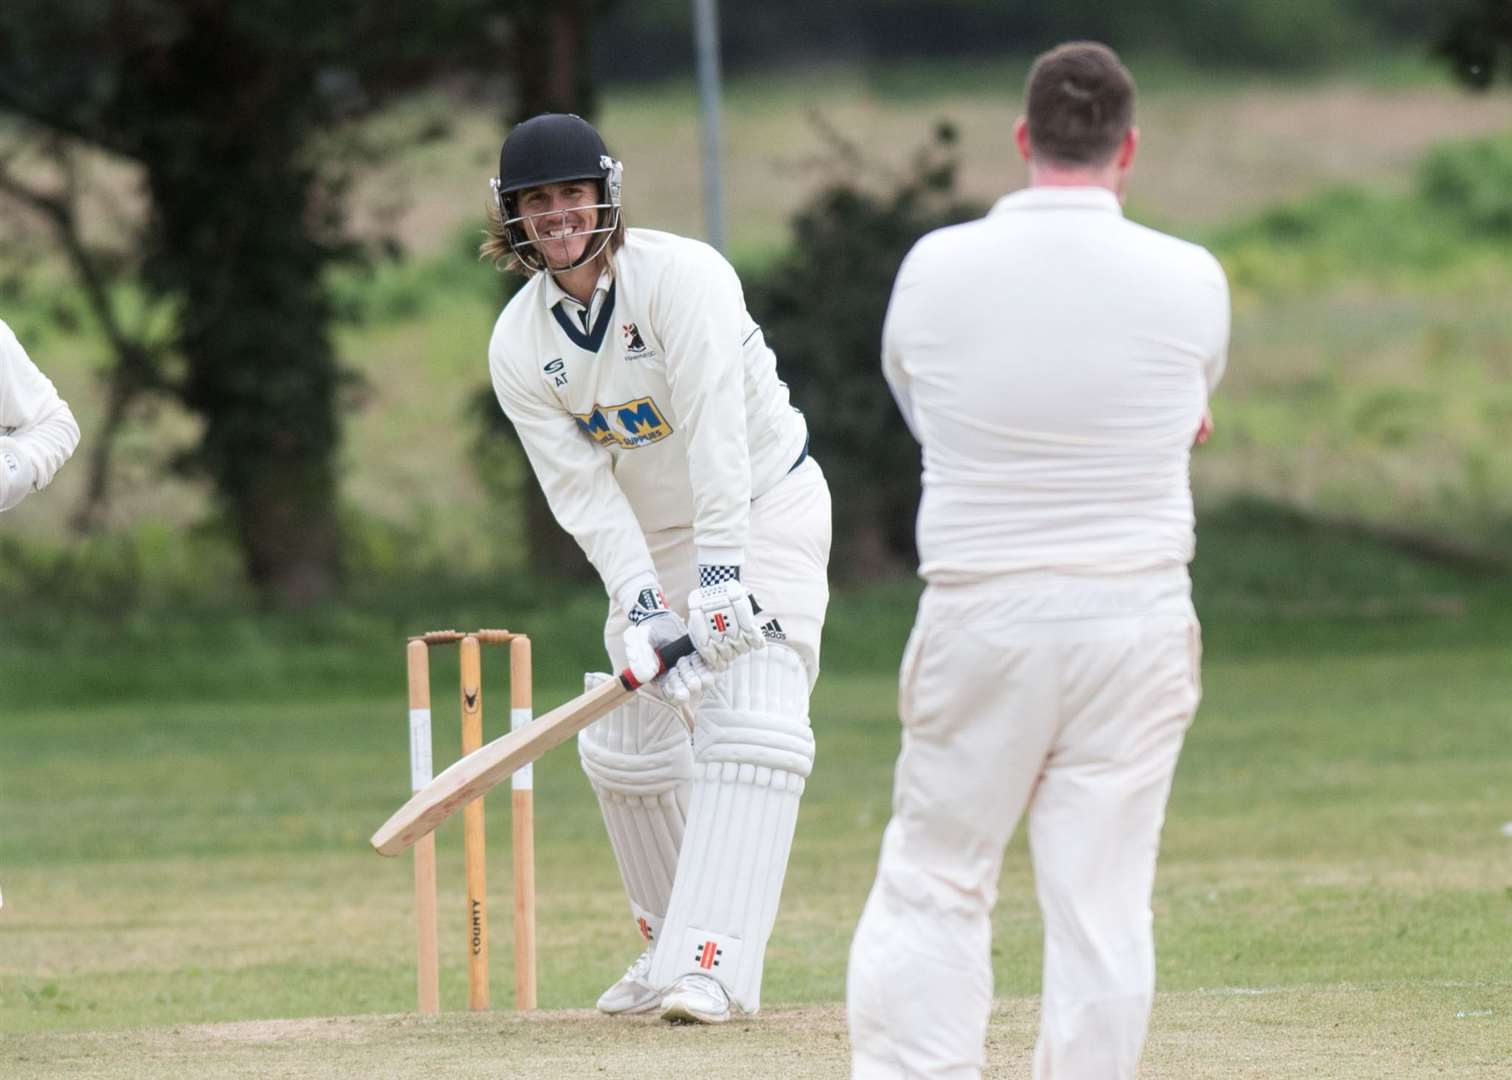 Haverhill batsman Adam Dellar top-scored for the first team with a 71-run knock. Picture by Mark Westley.